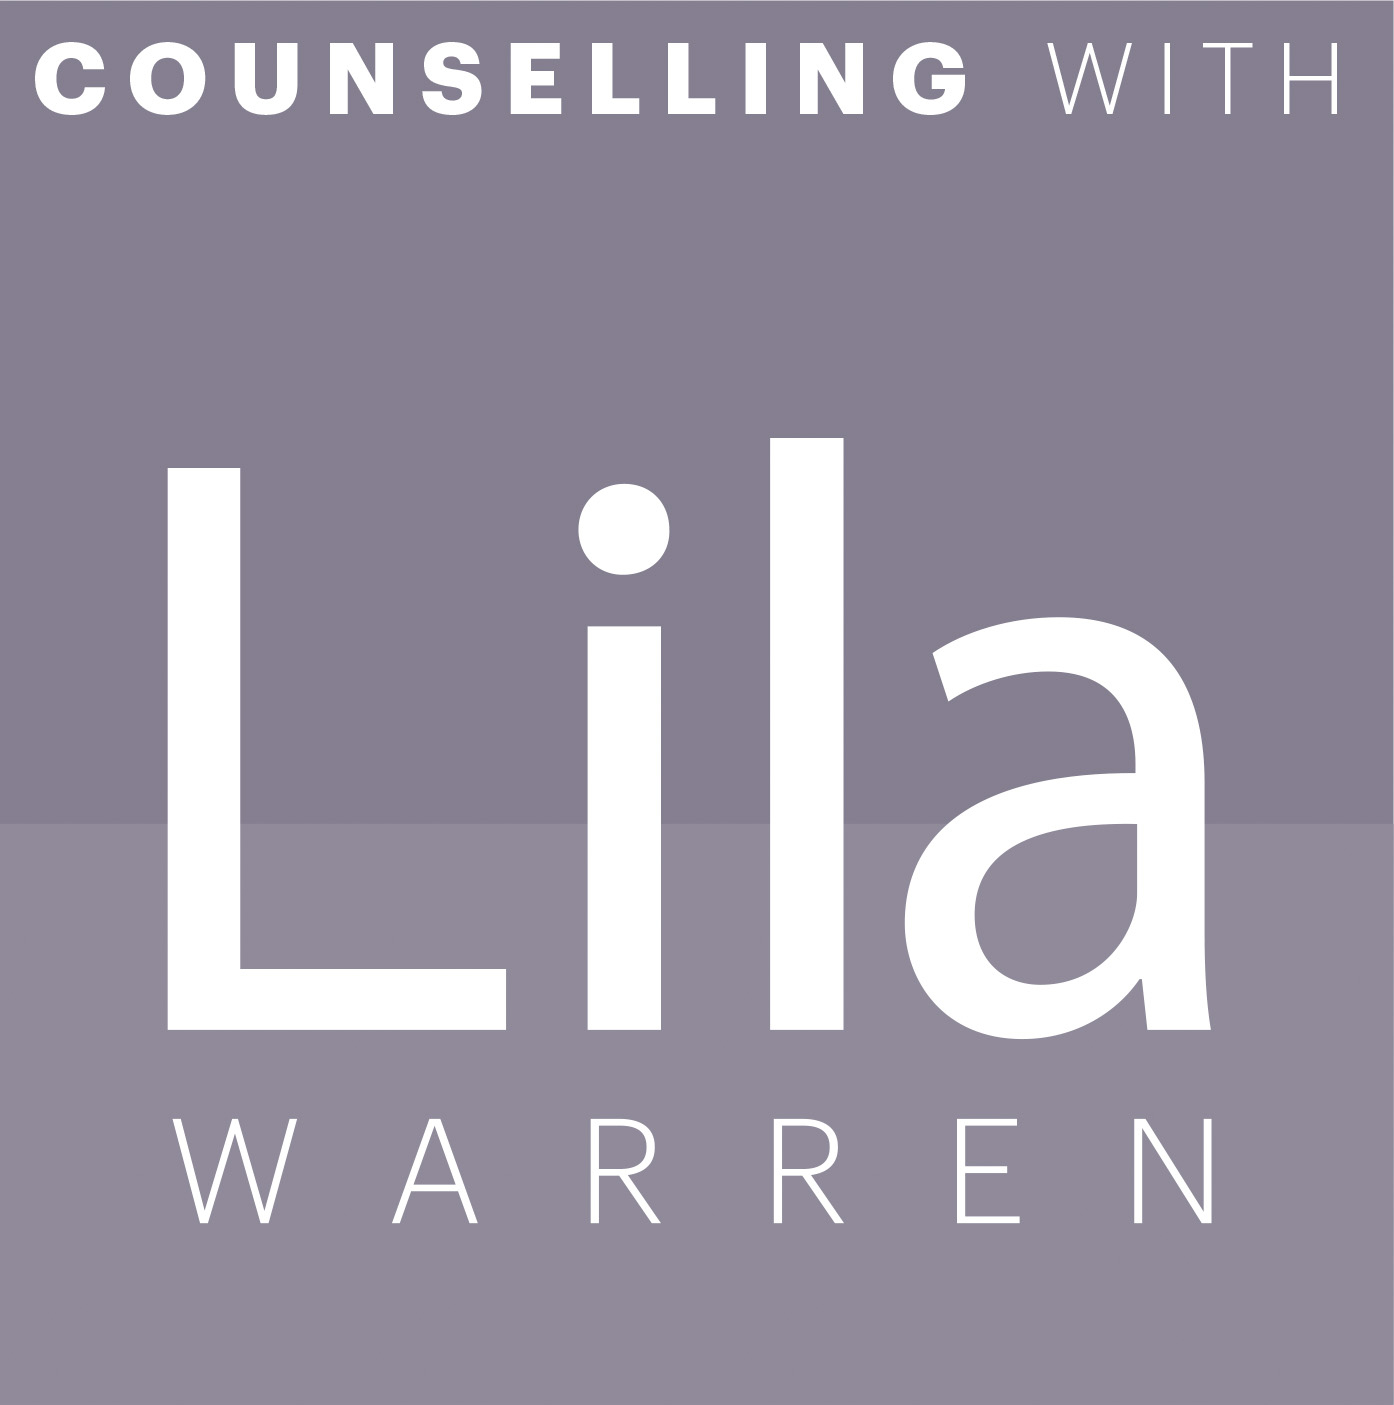 Counselling with Lila Warren